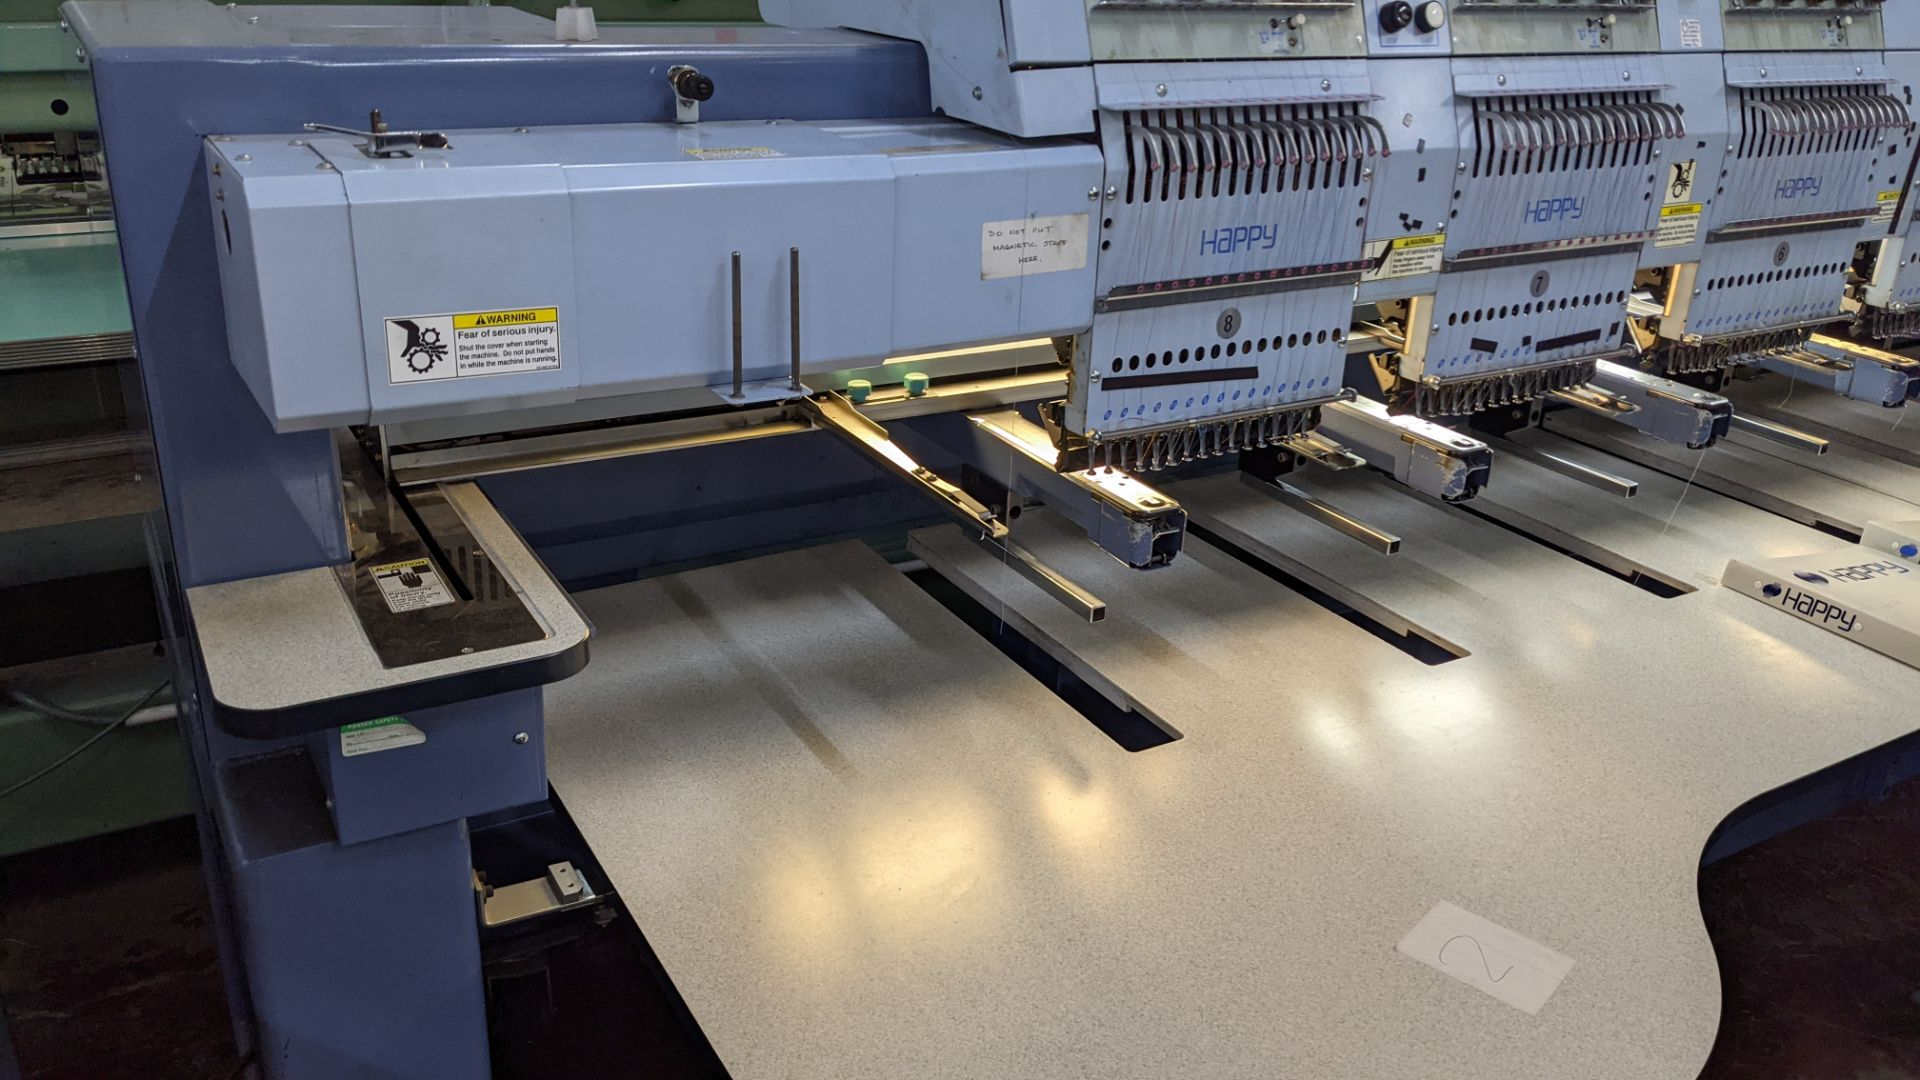 Happy 8 head embroidery machine, model HCG-1508-45TTC, 15 needles per head, including frames & other - Image 12 of 27